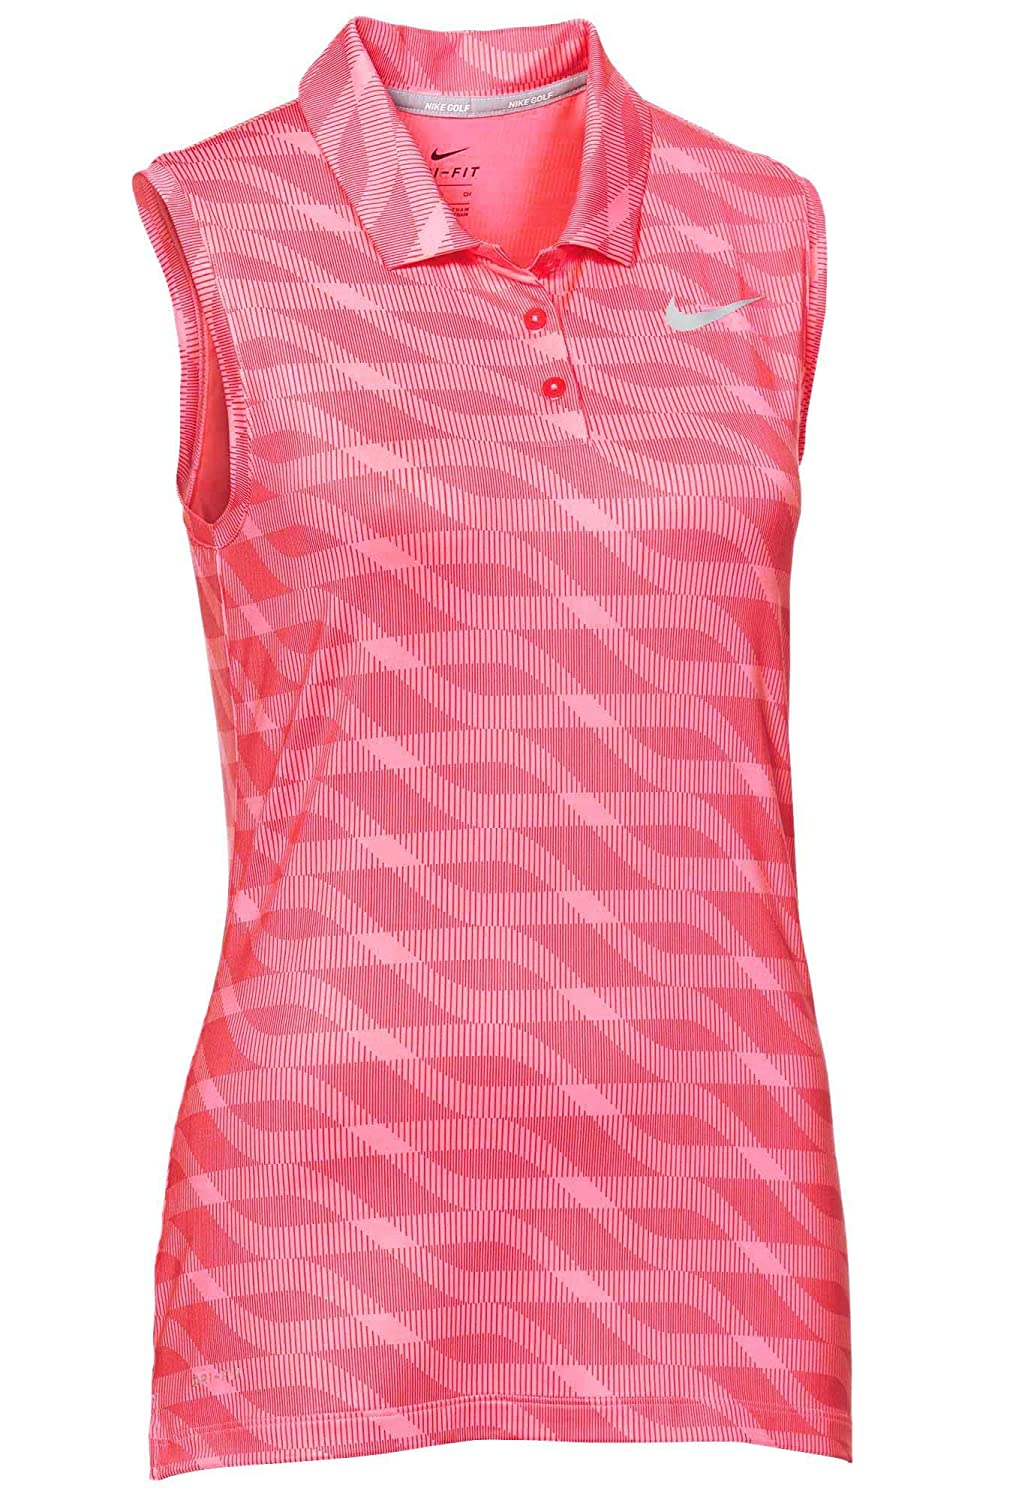 7aff3a6977db4 Amazon.com: NIKE Women's Dri-Fit Sleeveless Golf Polo-Hyper Pink ...